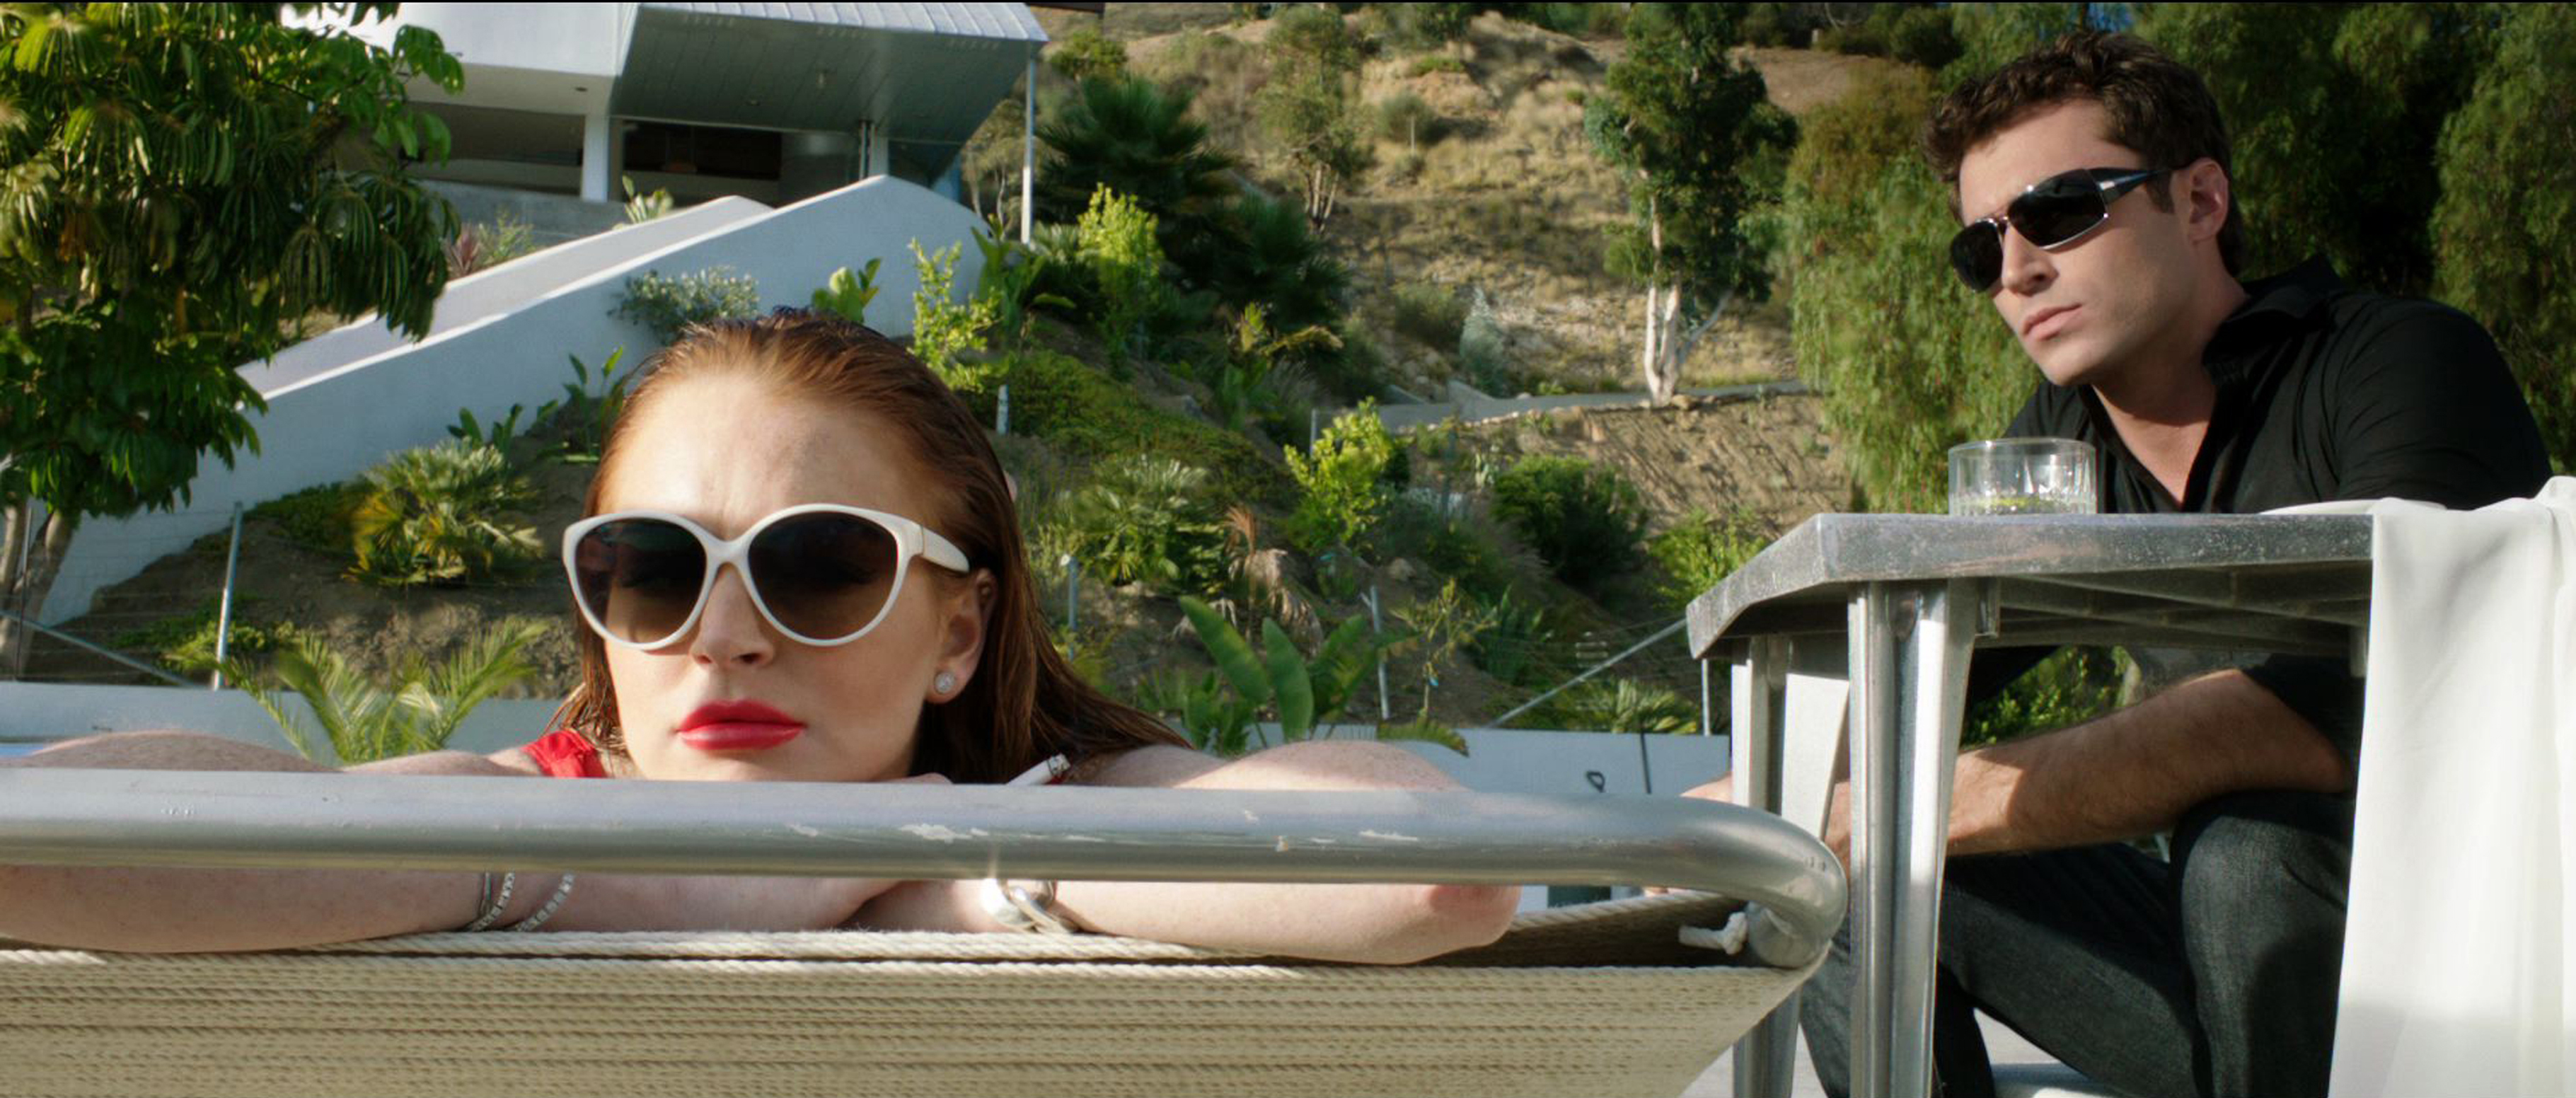 Paul Schrader - The Canyons